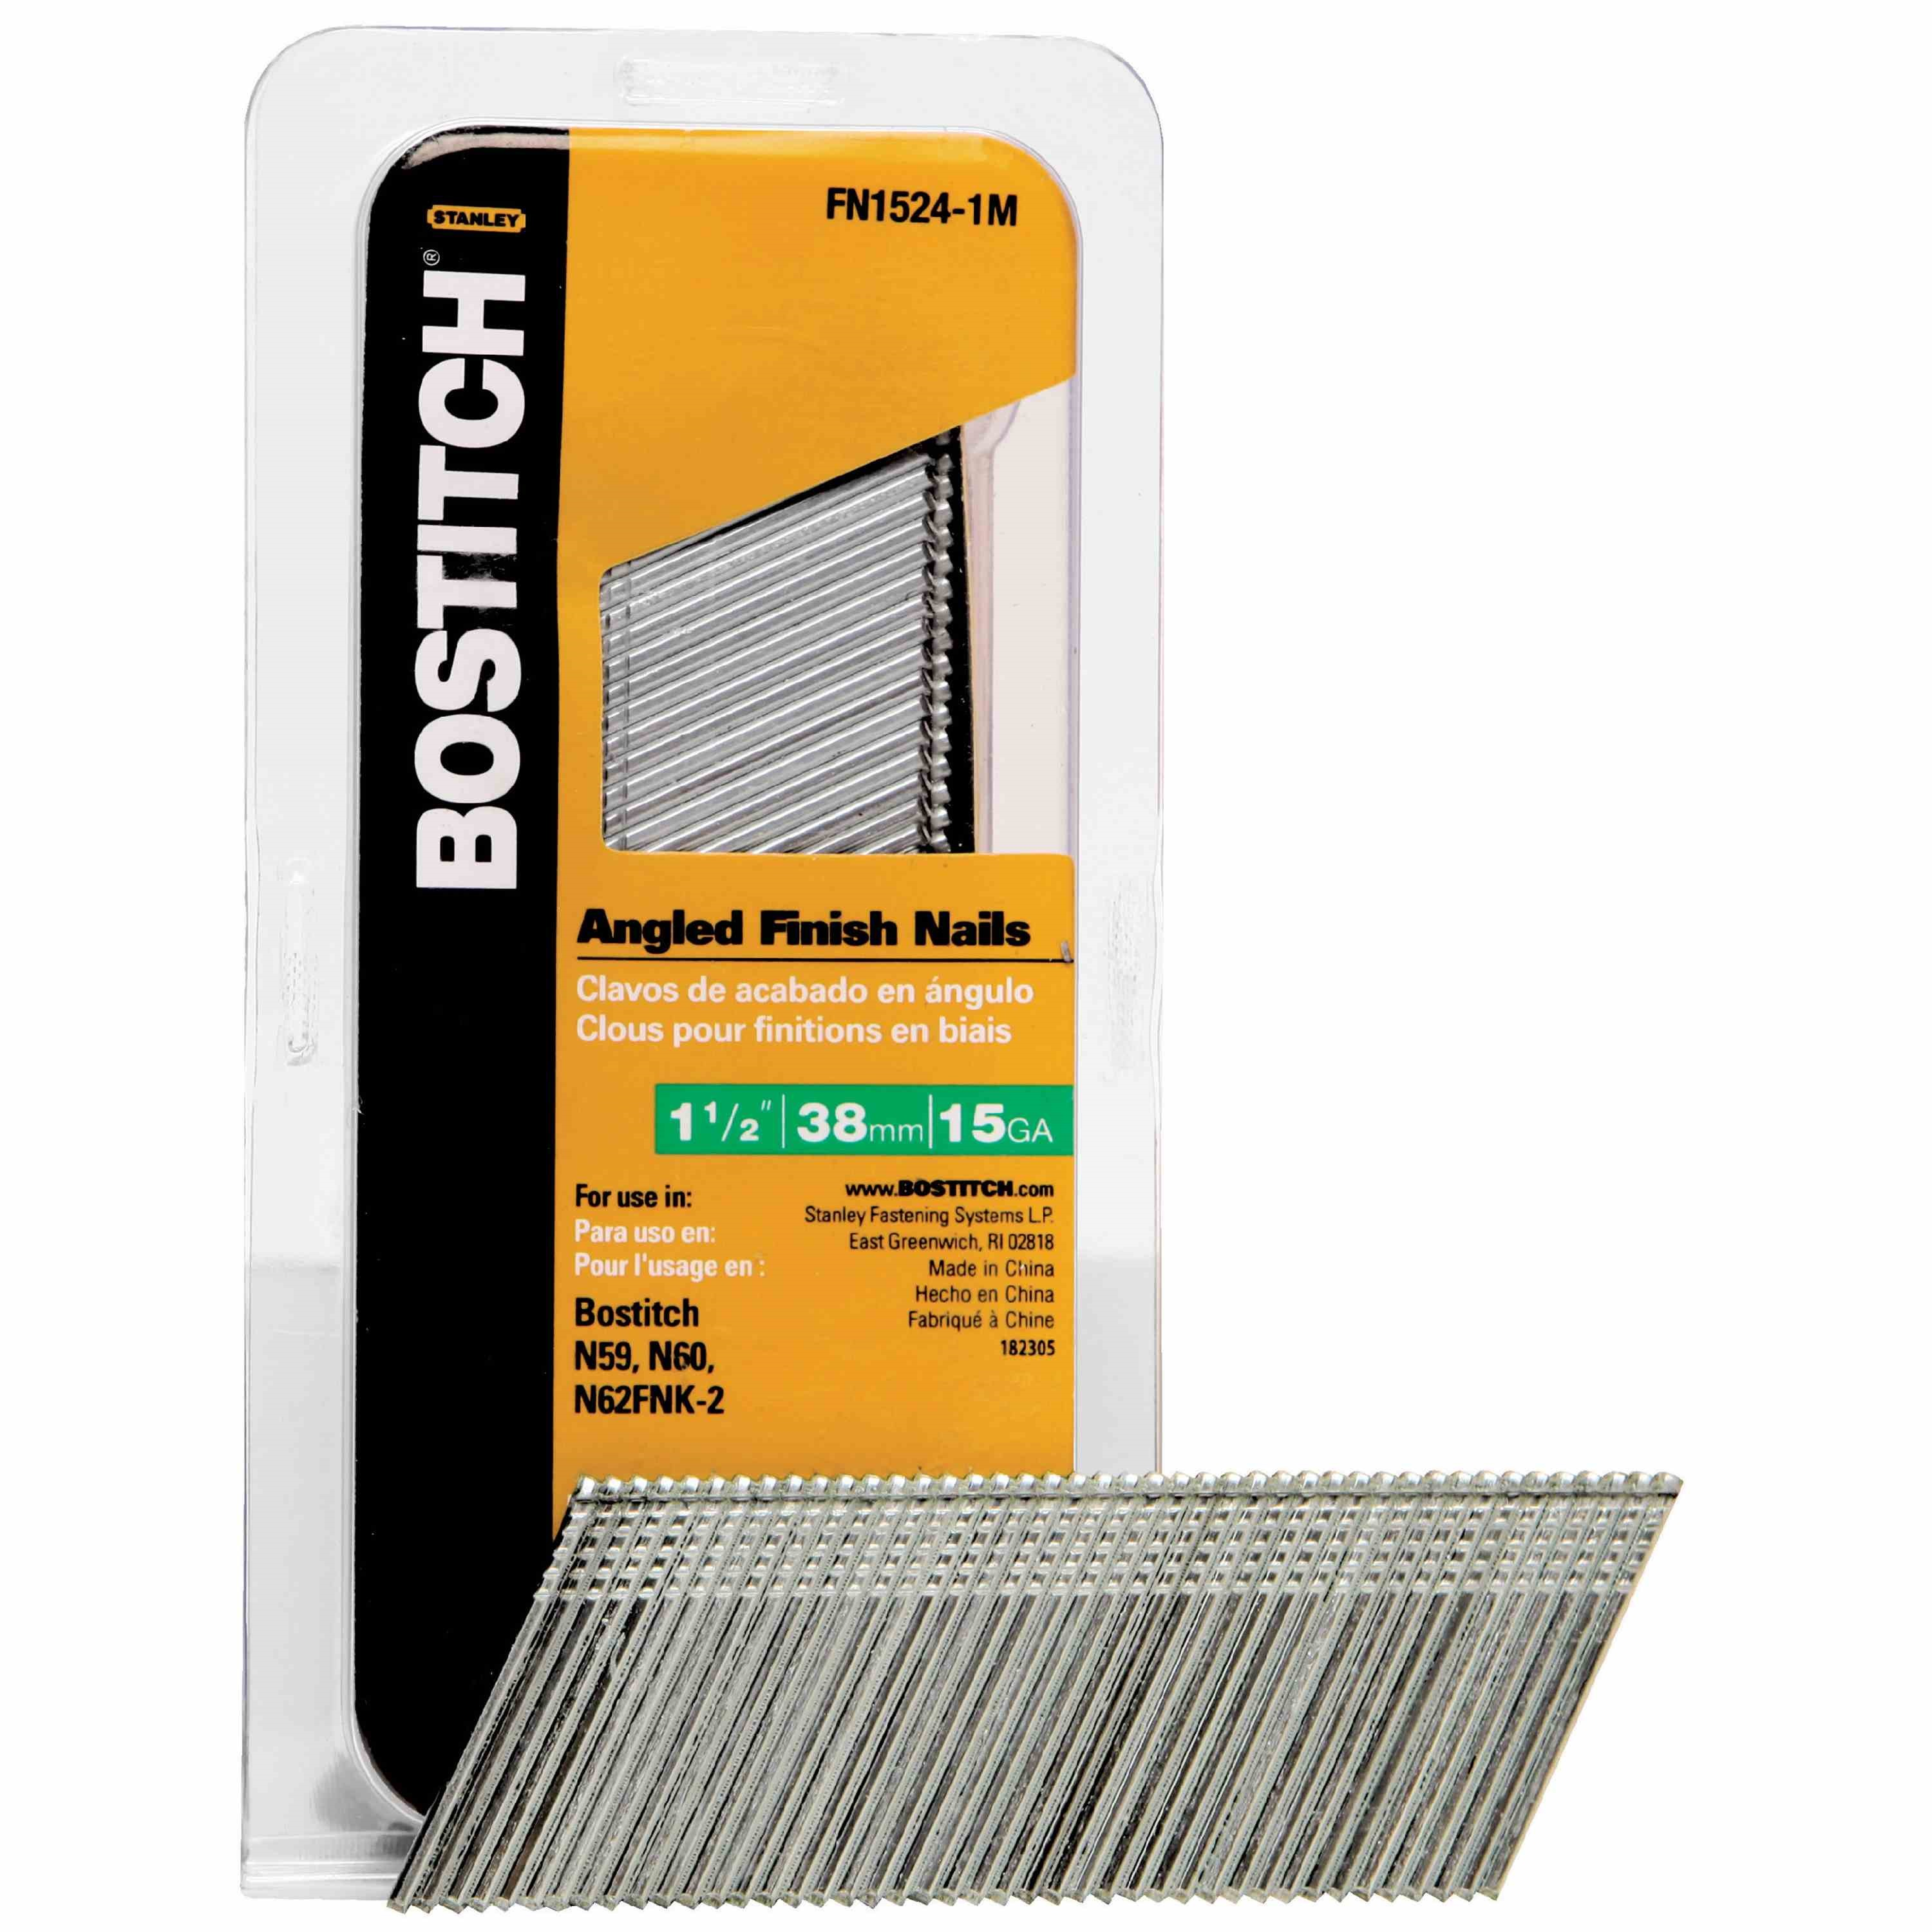 Picture of Bostitch FN1524-1M Finish Nail, 1-1/2 in L, 15 ga Gauge, Steel, Bright, Flat Head, Smooth Shank, 1000